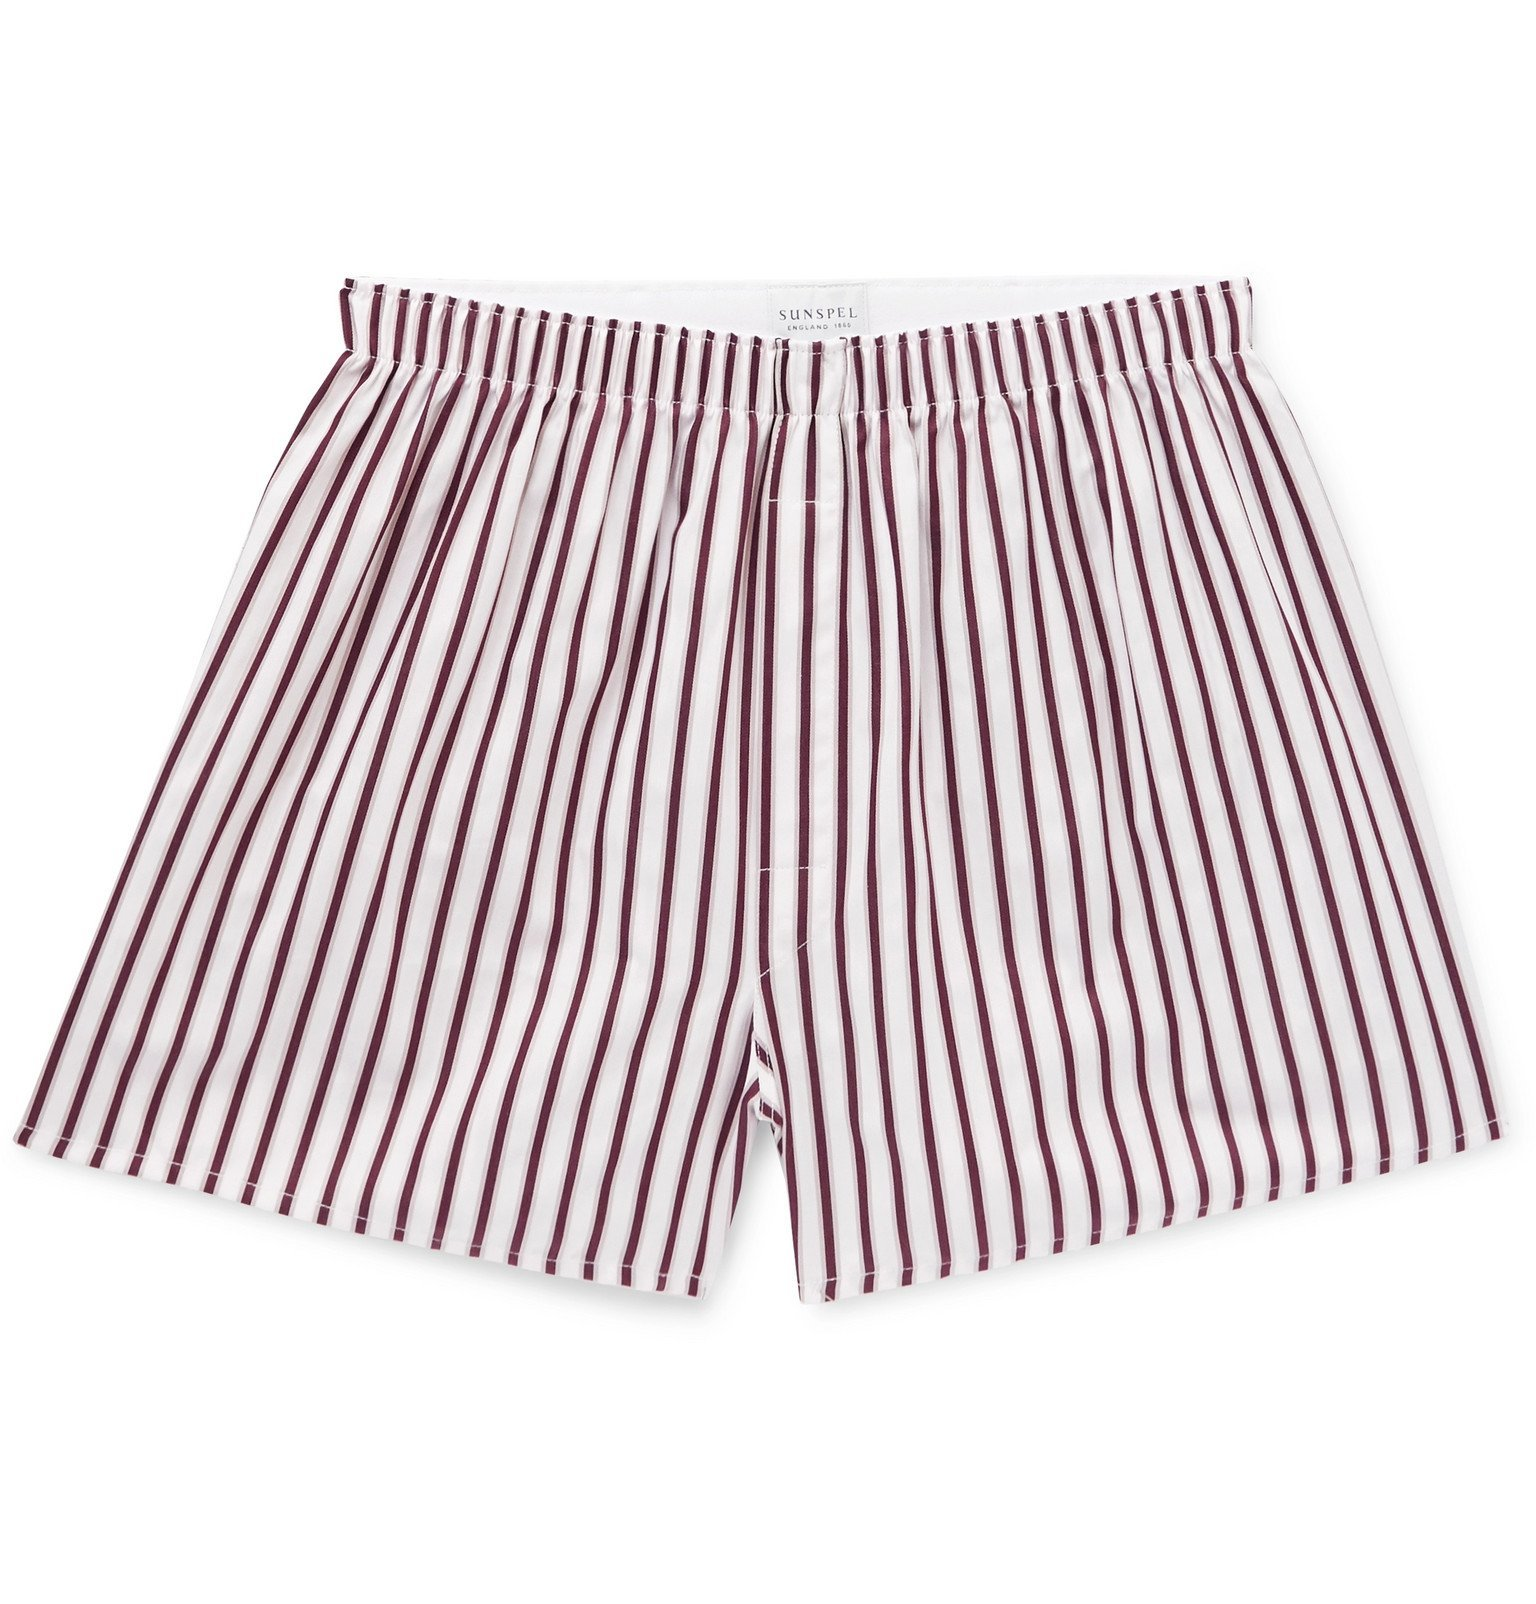 Sunspel - Striped Cotton Boxer Shorts - Red